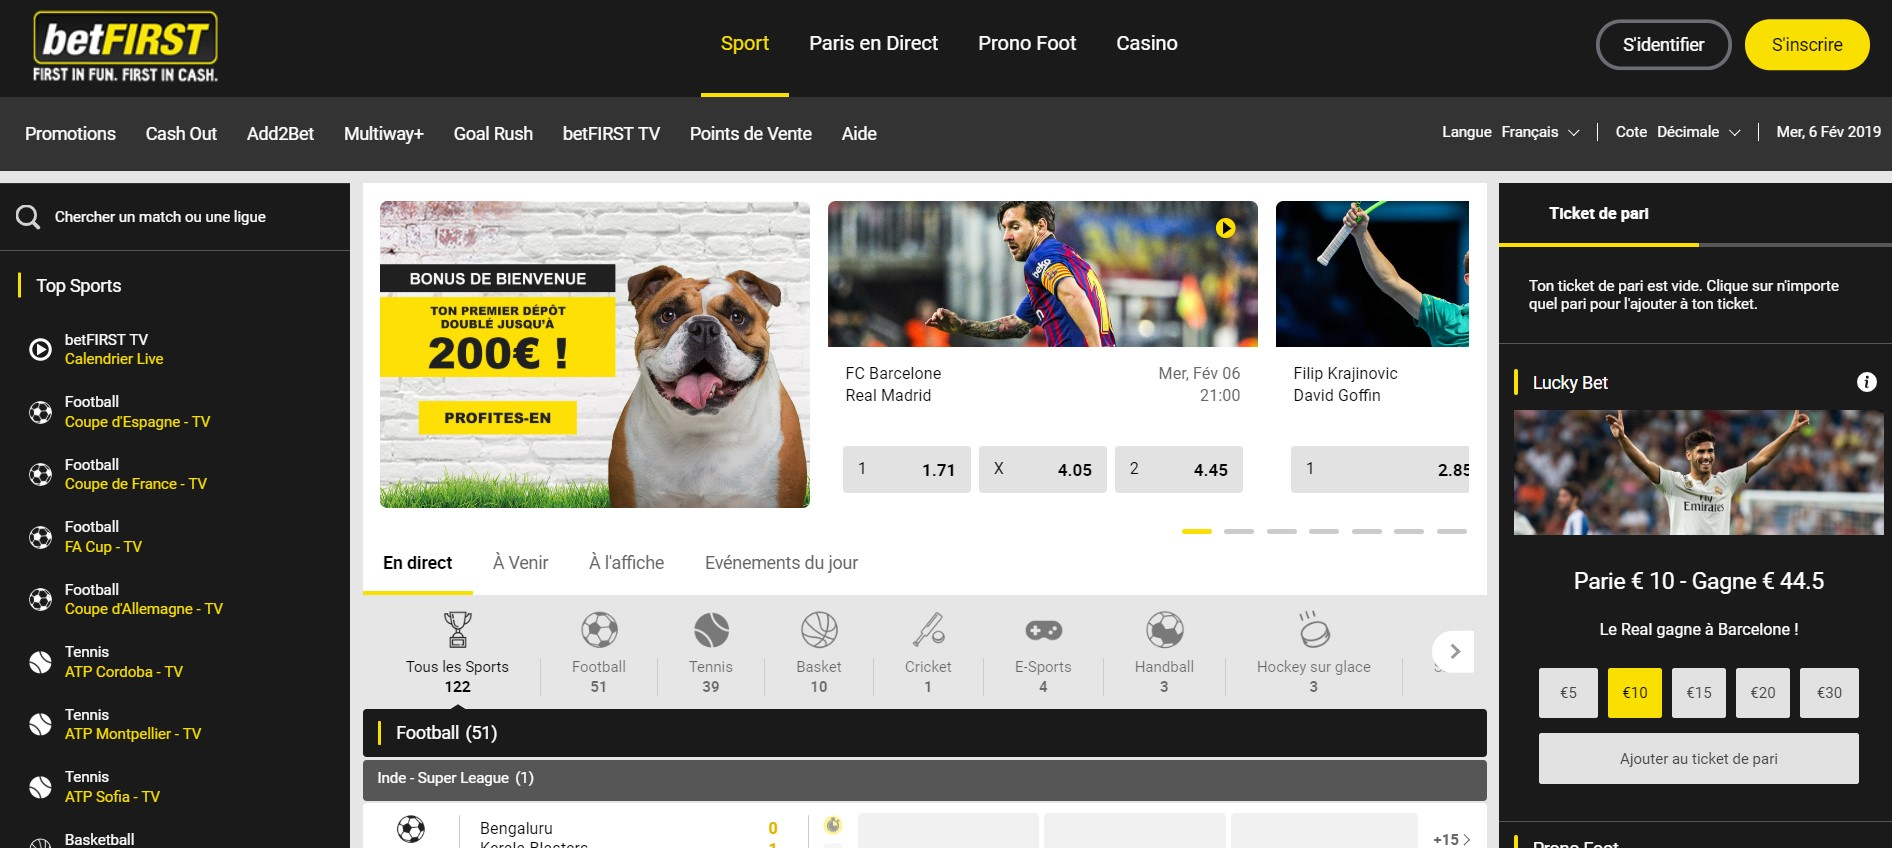 Mobile bet - 99520